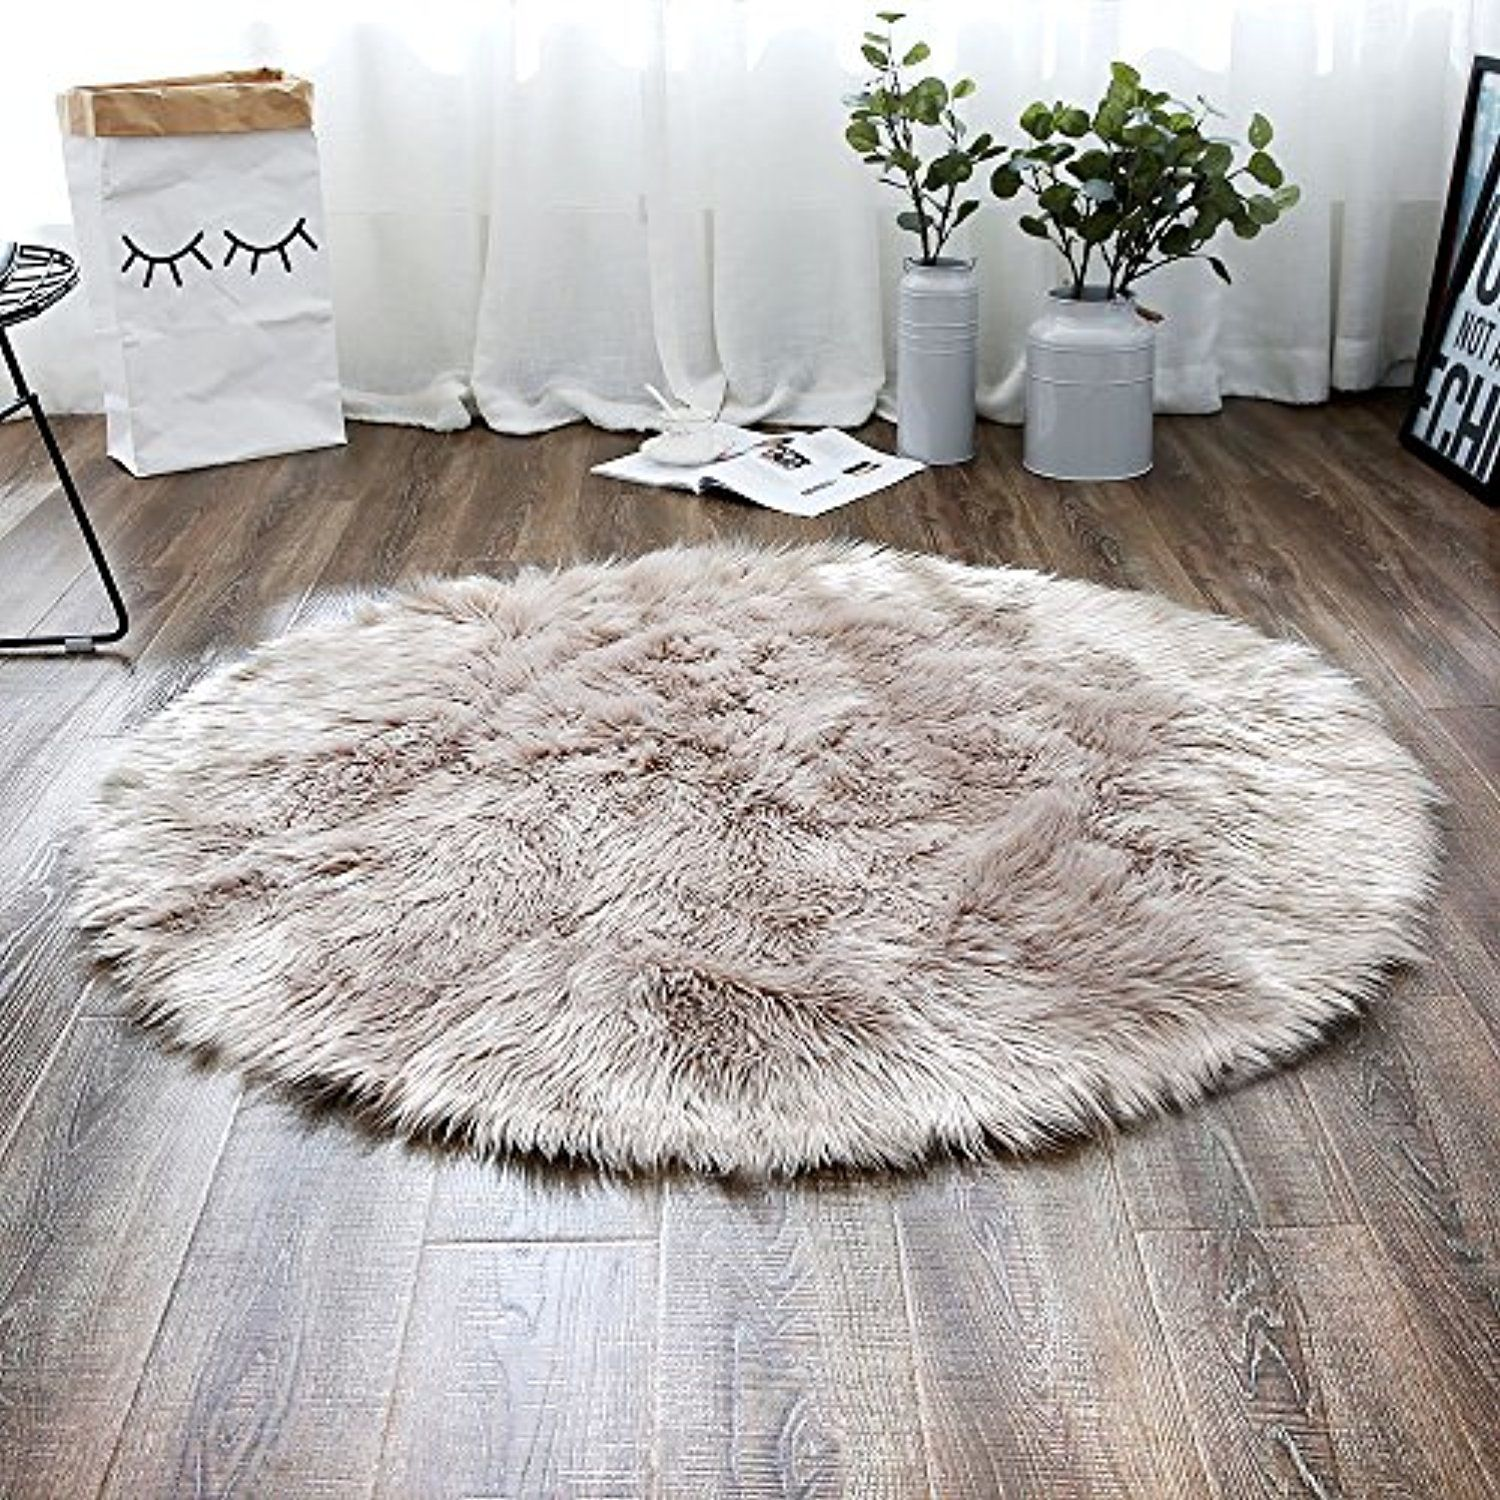 for decorating rug rugs with new costco throw orian area chic decoration lovely floor design elegant ideas of edmonton pattern